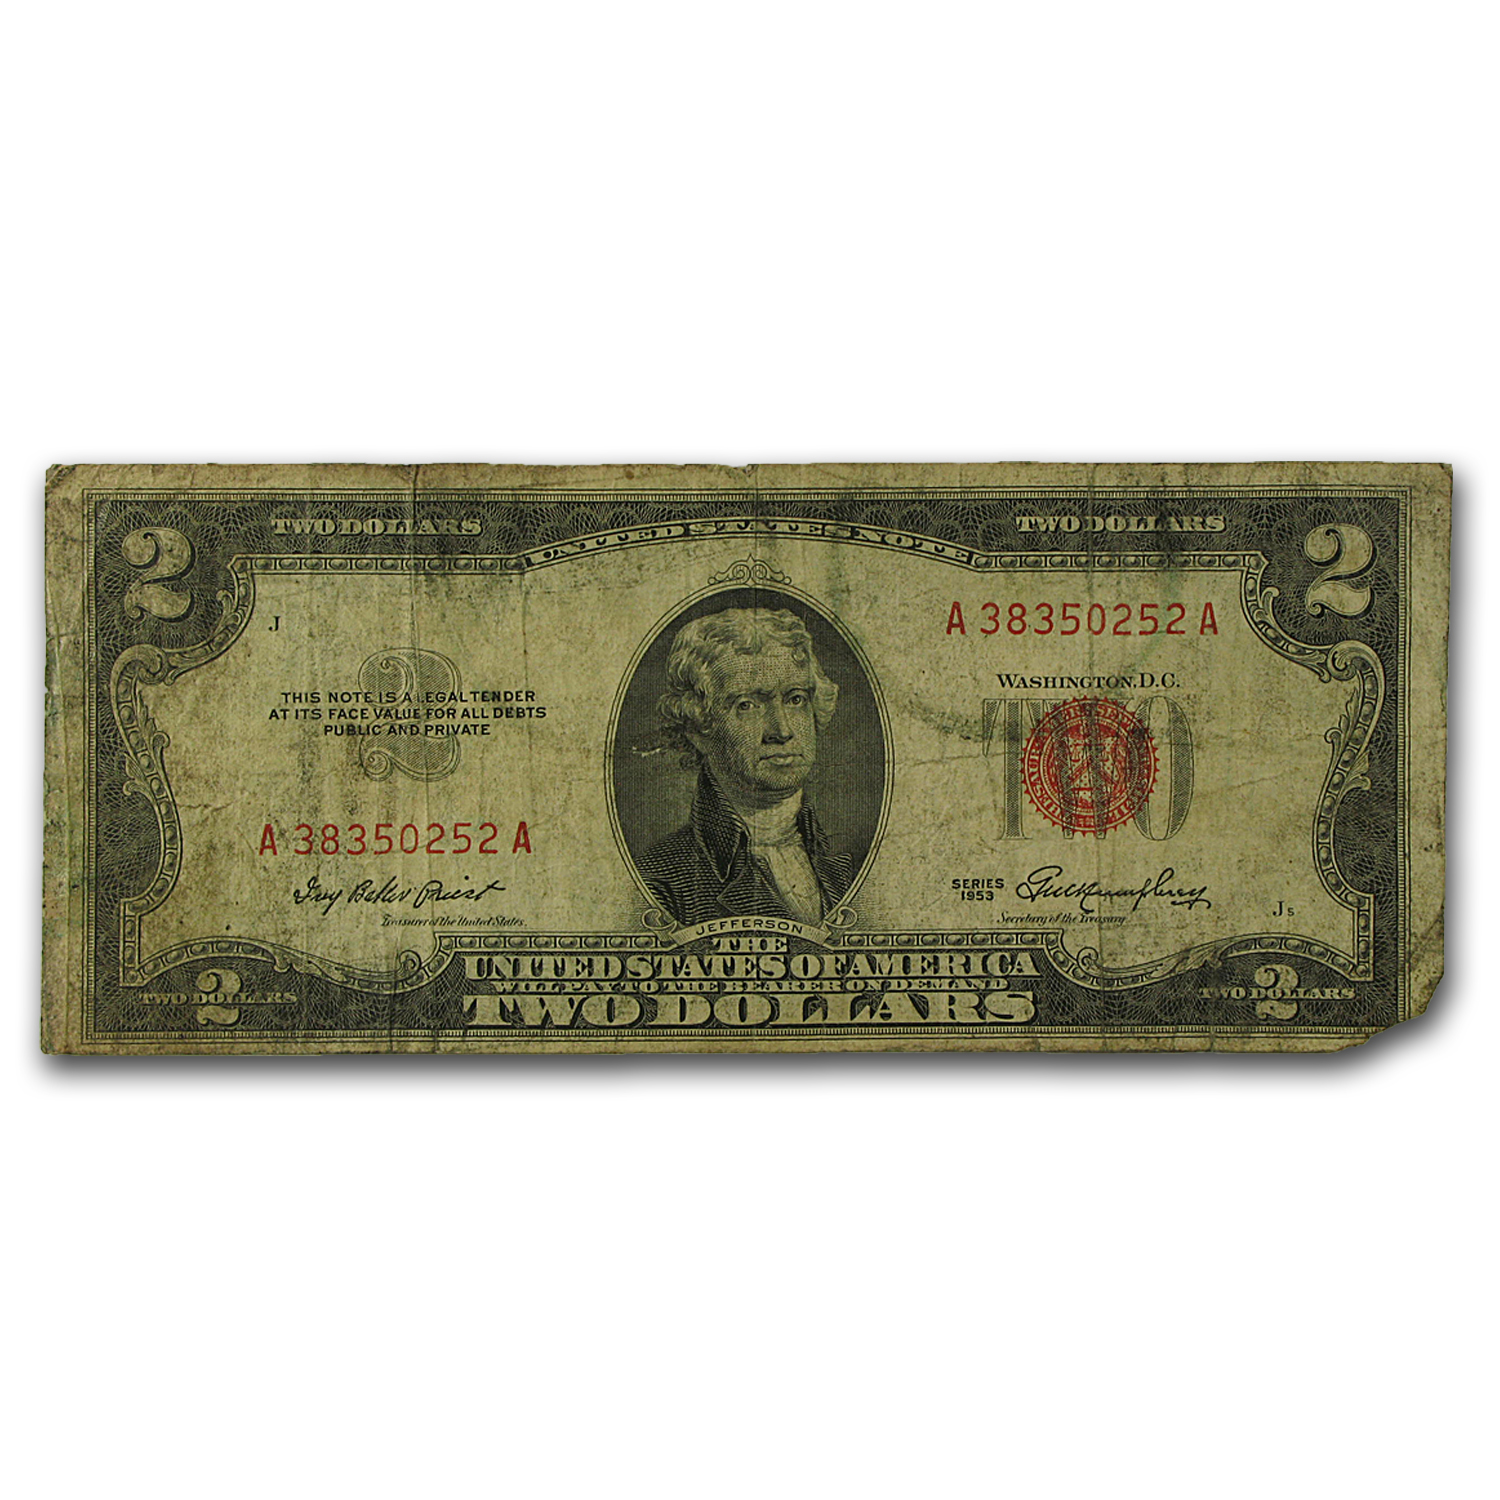 1953 thru 1953-C $2.00 U.S. Notes Red Seal Cull/Good